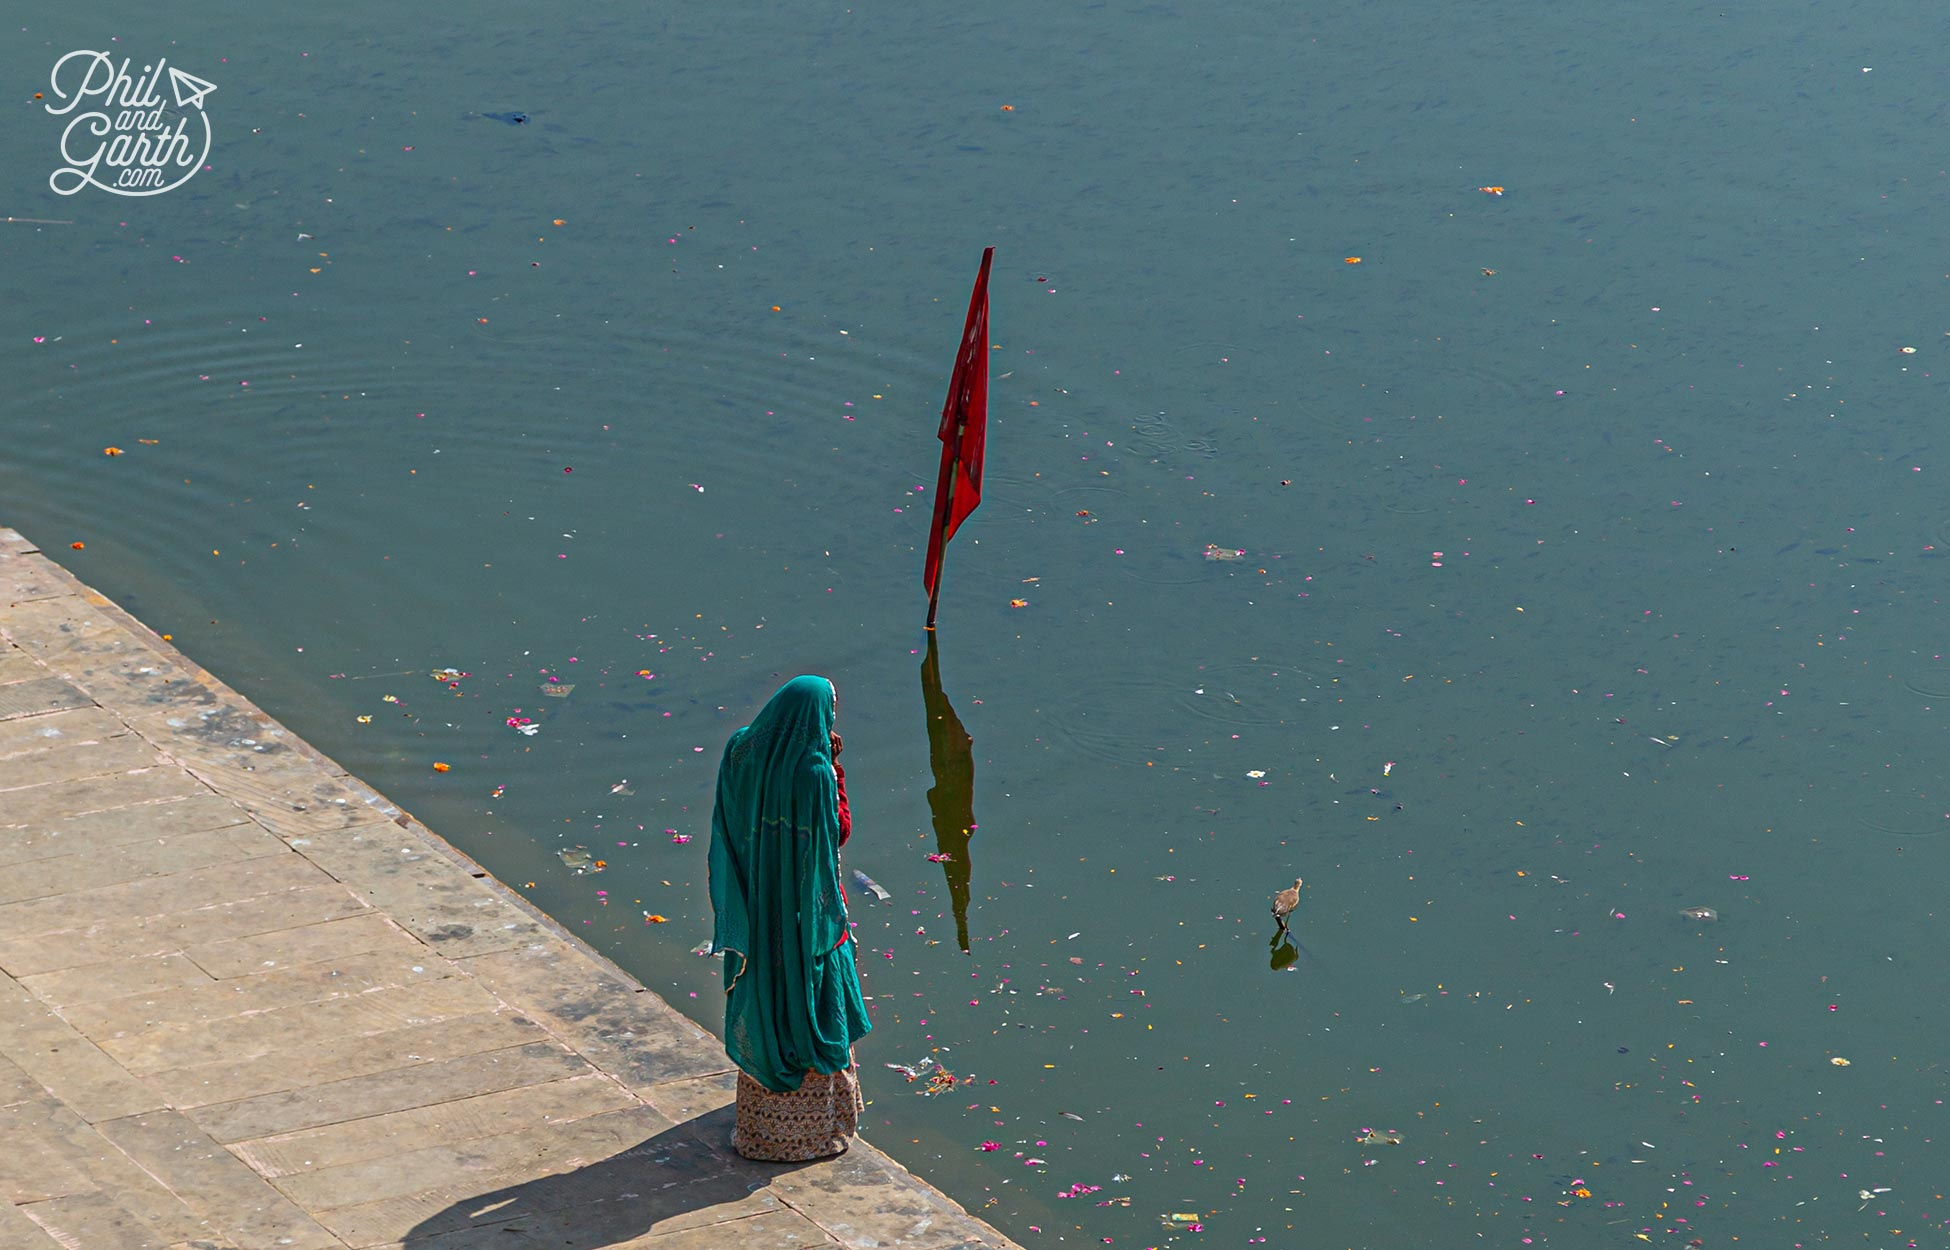 The lake is full of rose petals from the puja ceremonies that take place by the water